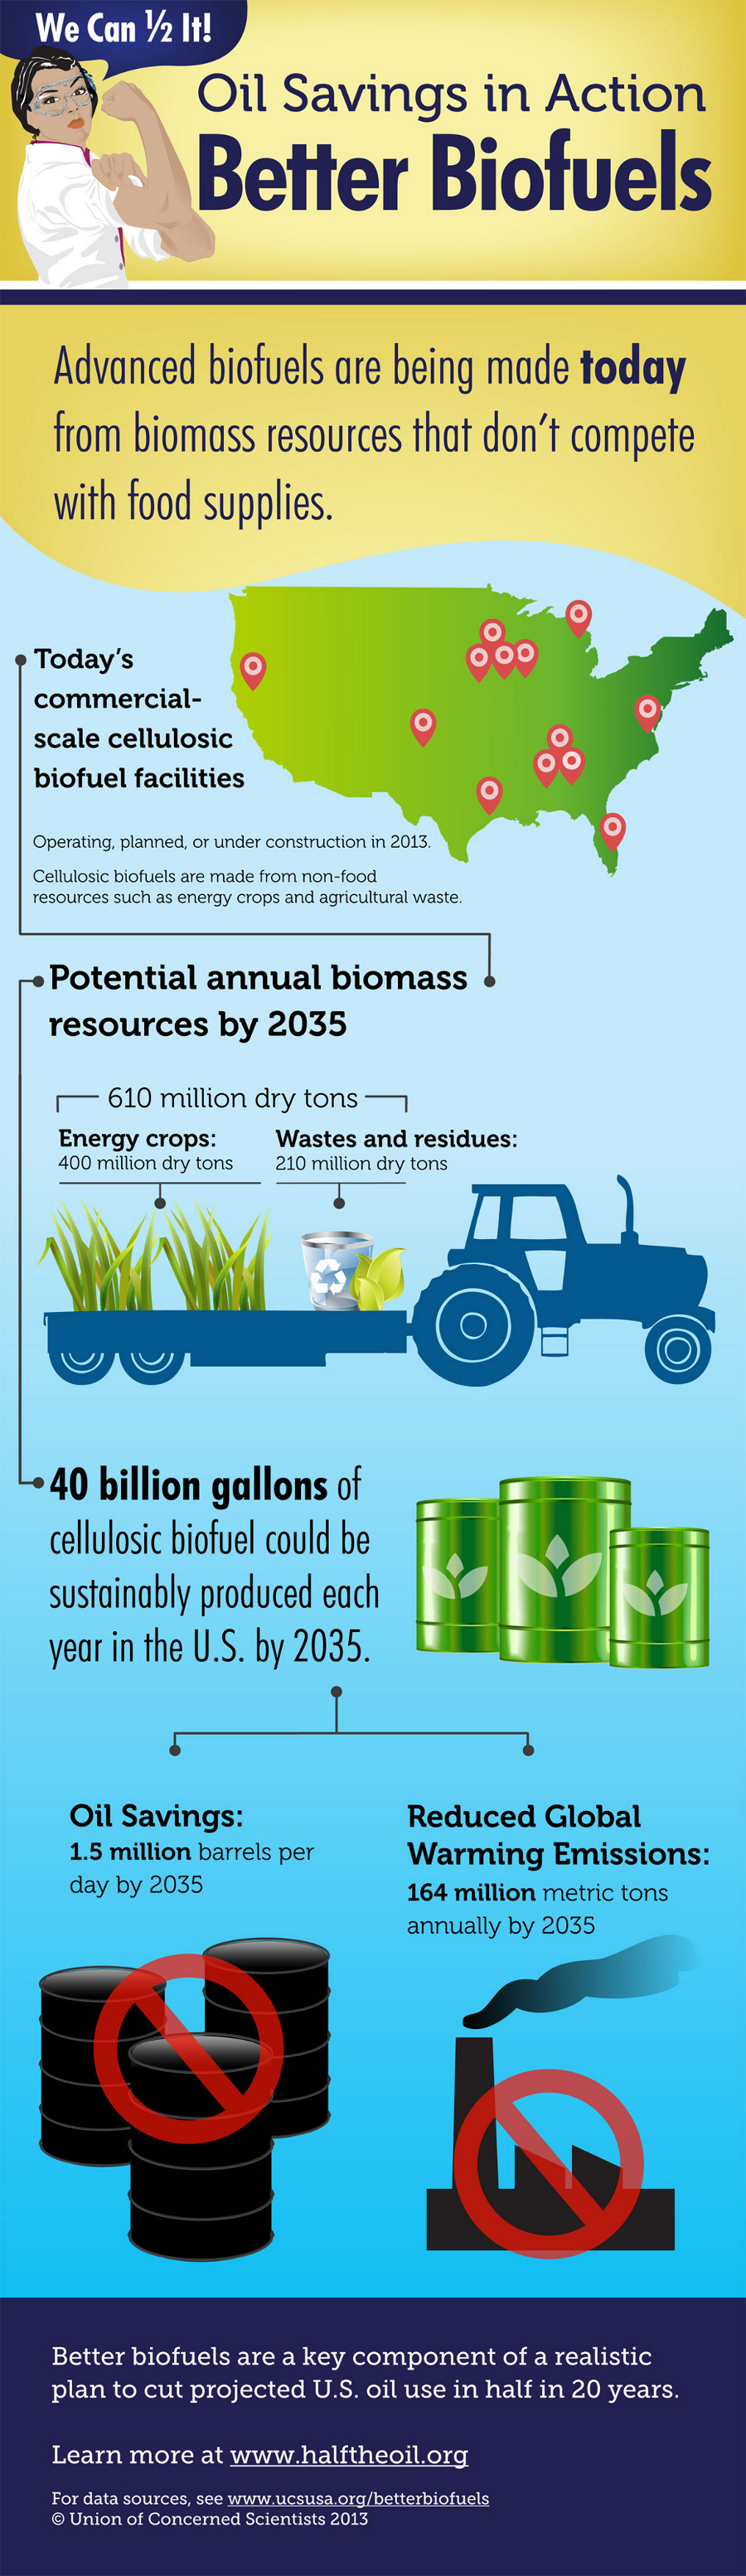 Facts About Biofuels in the United States